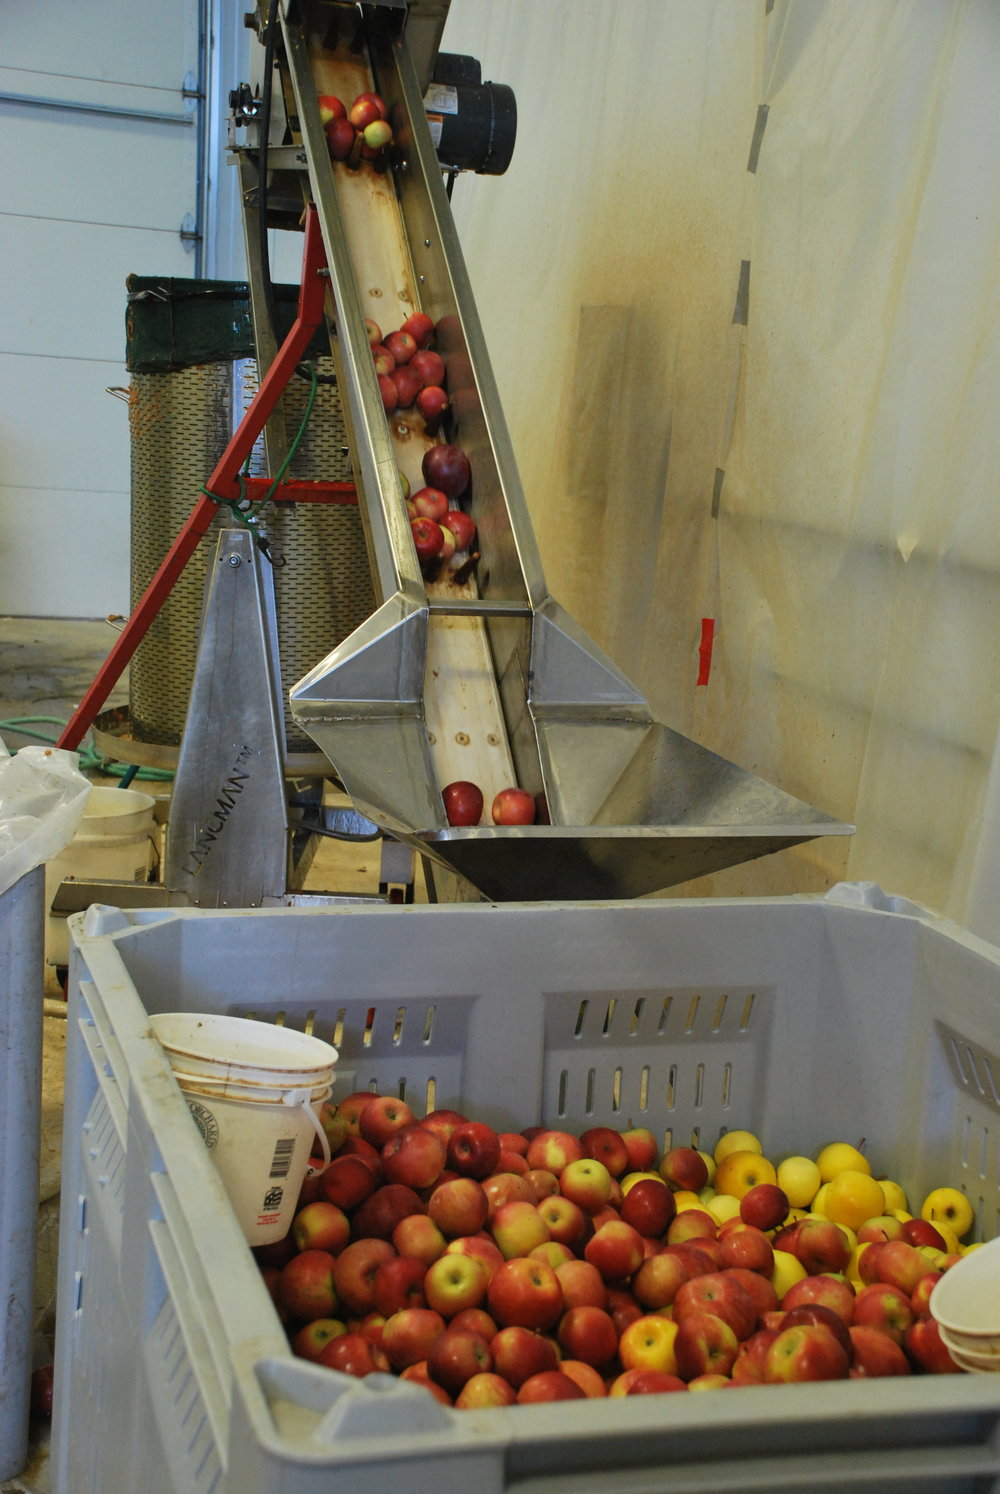 Above: Apples going up the elevator